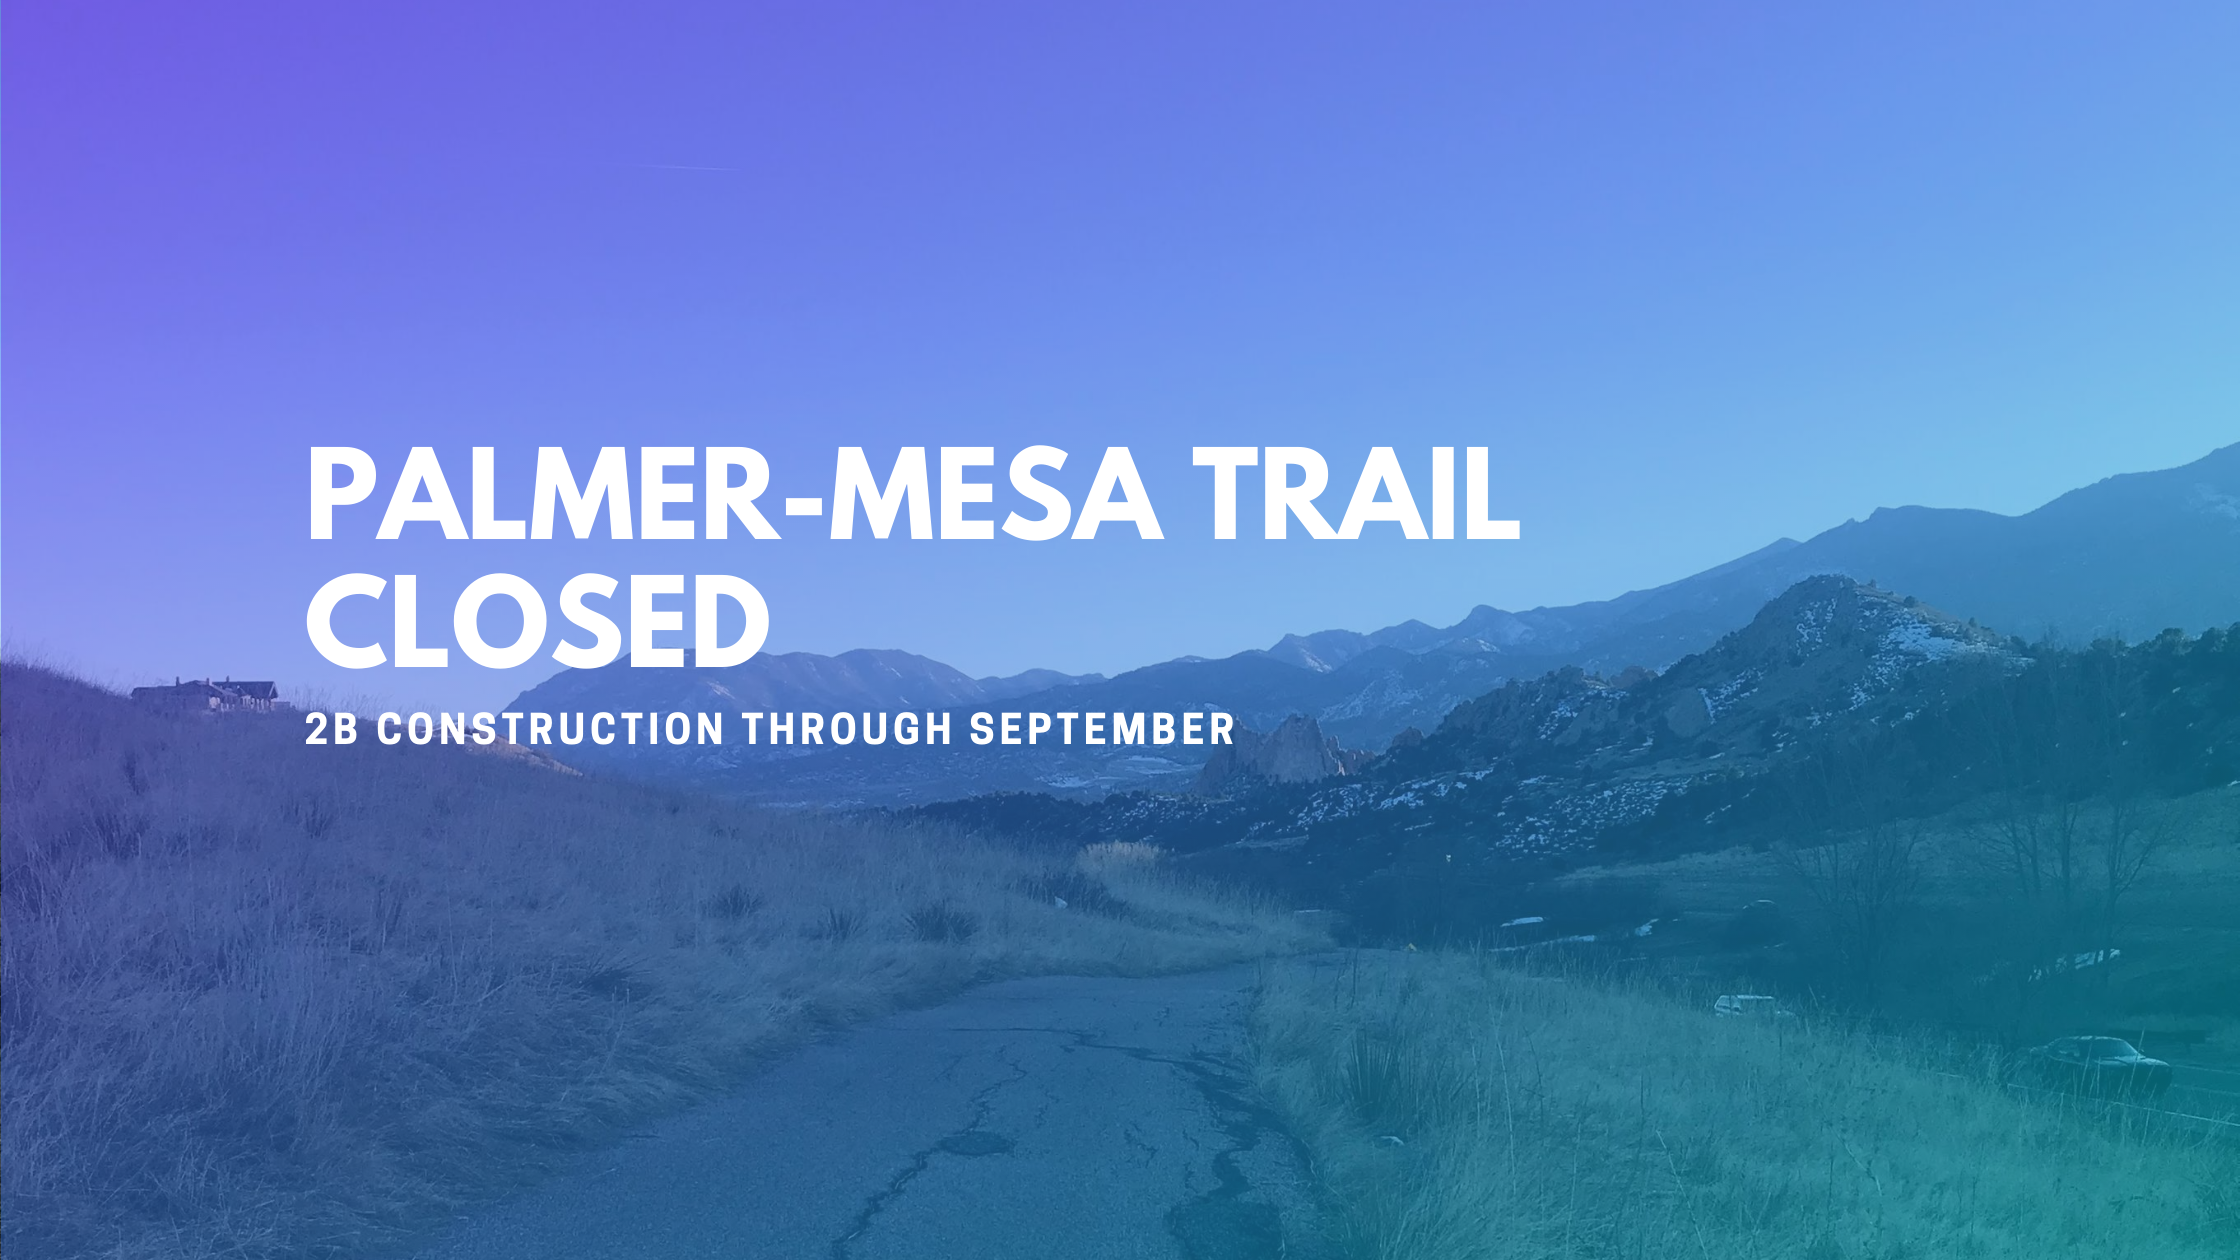 Palmer-Mesa Trail Closed For Construction Through September